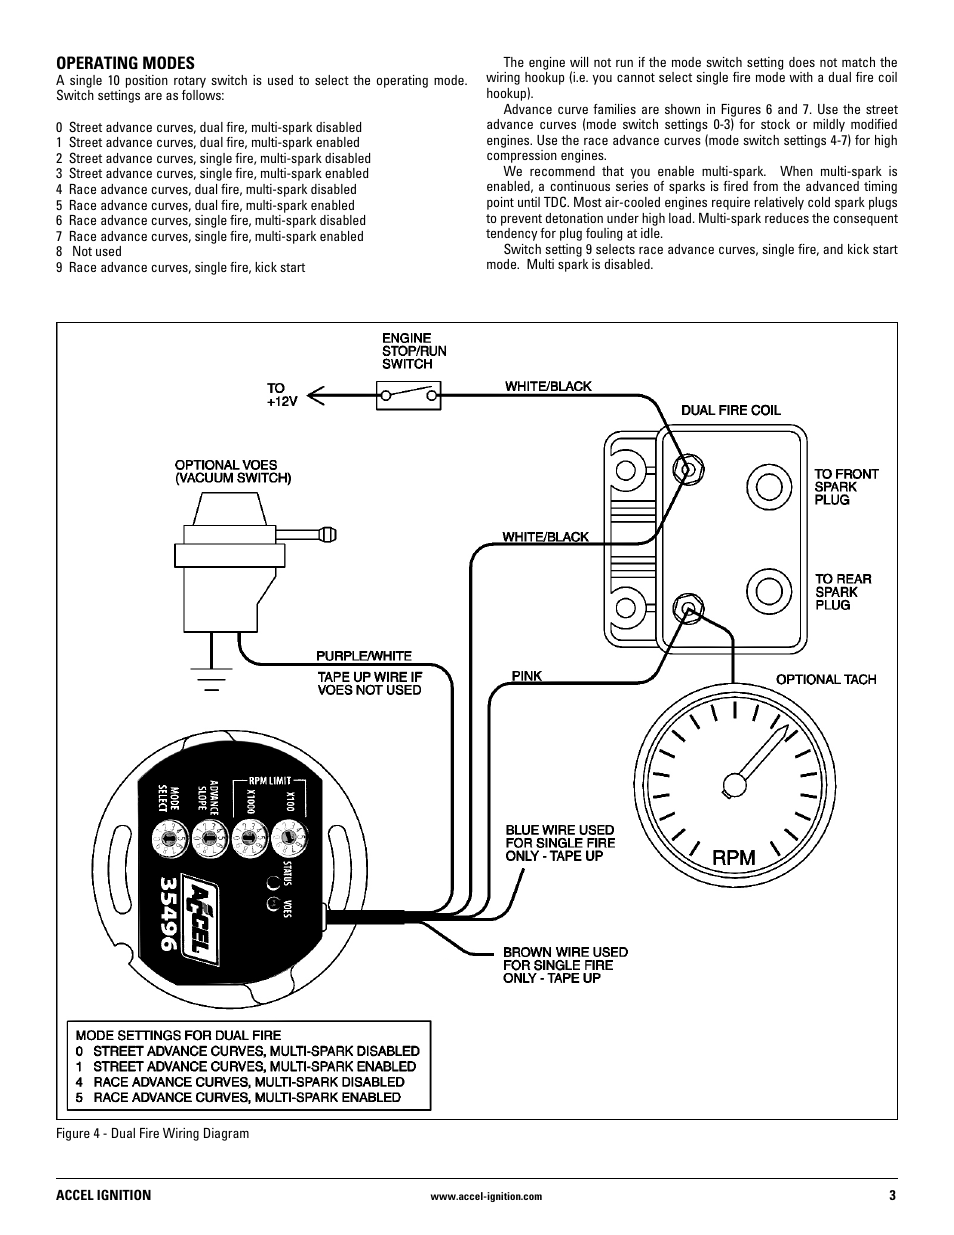 mallory ignition accel ignition 35496 page3?resize\\\\\\\\\\\\\\\=665%2C861 mallory unilite wiring diagram tamahuproject org mallory wiring diagram at fashall.co